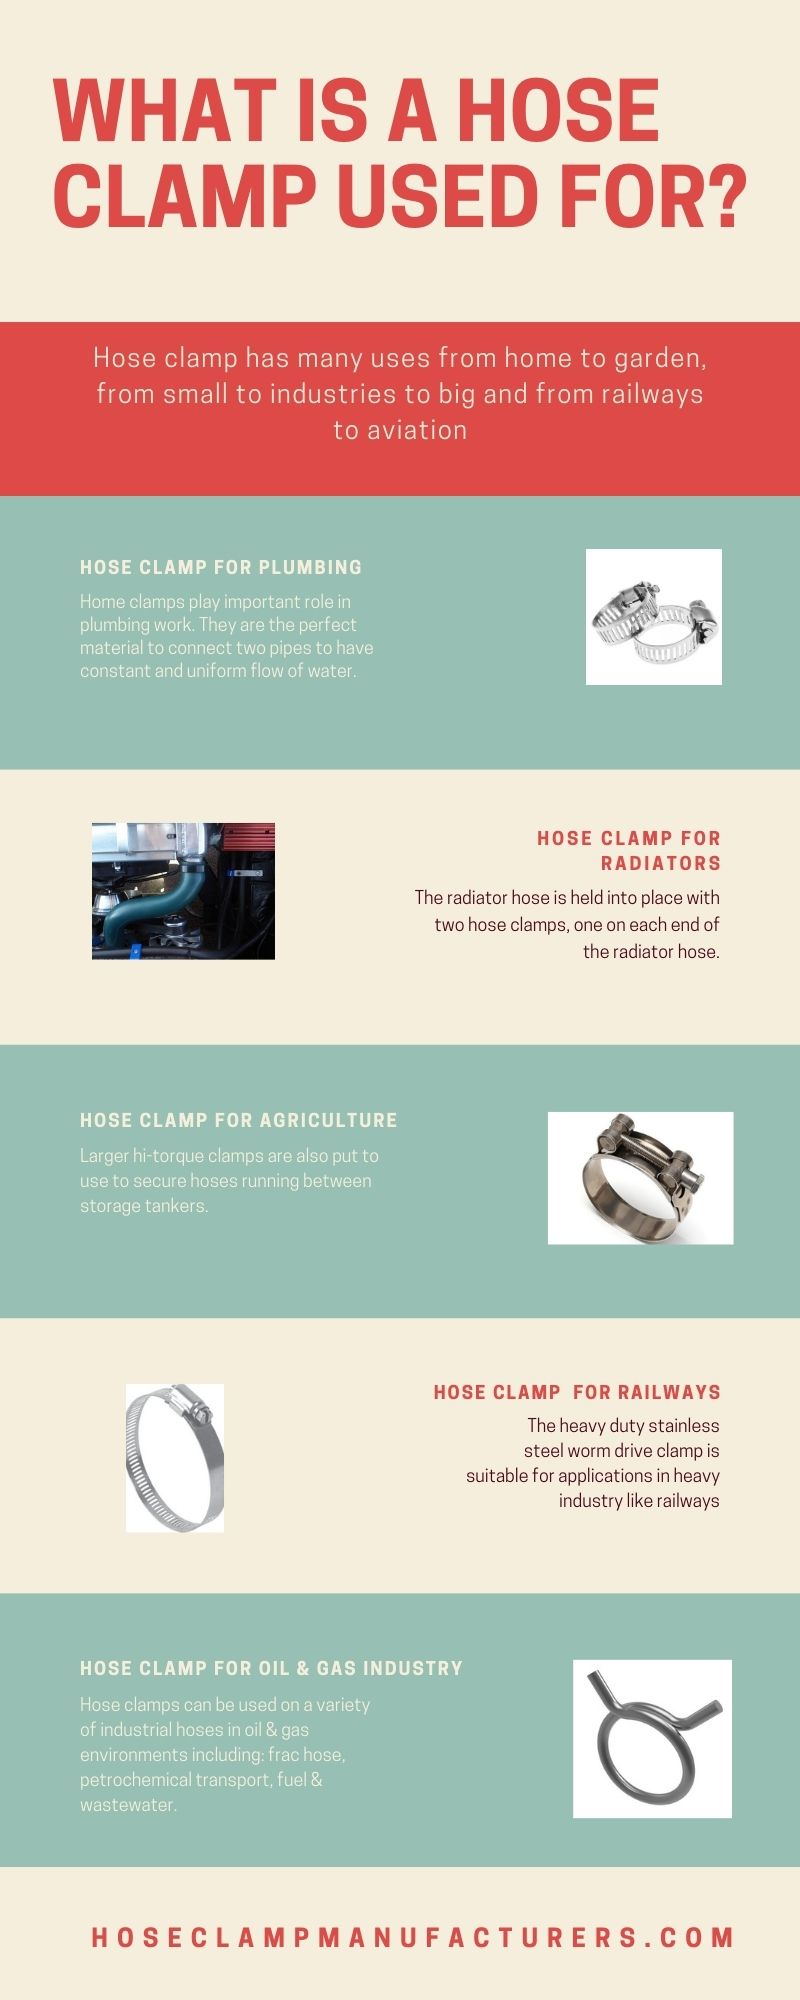 What is a hose clamp used for